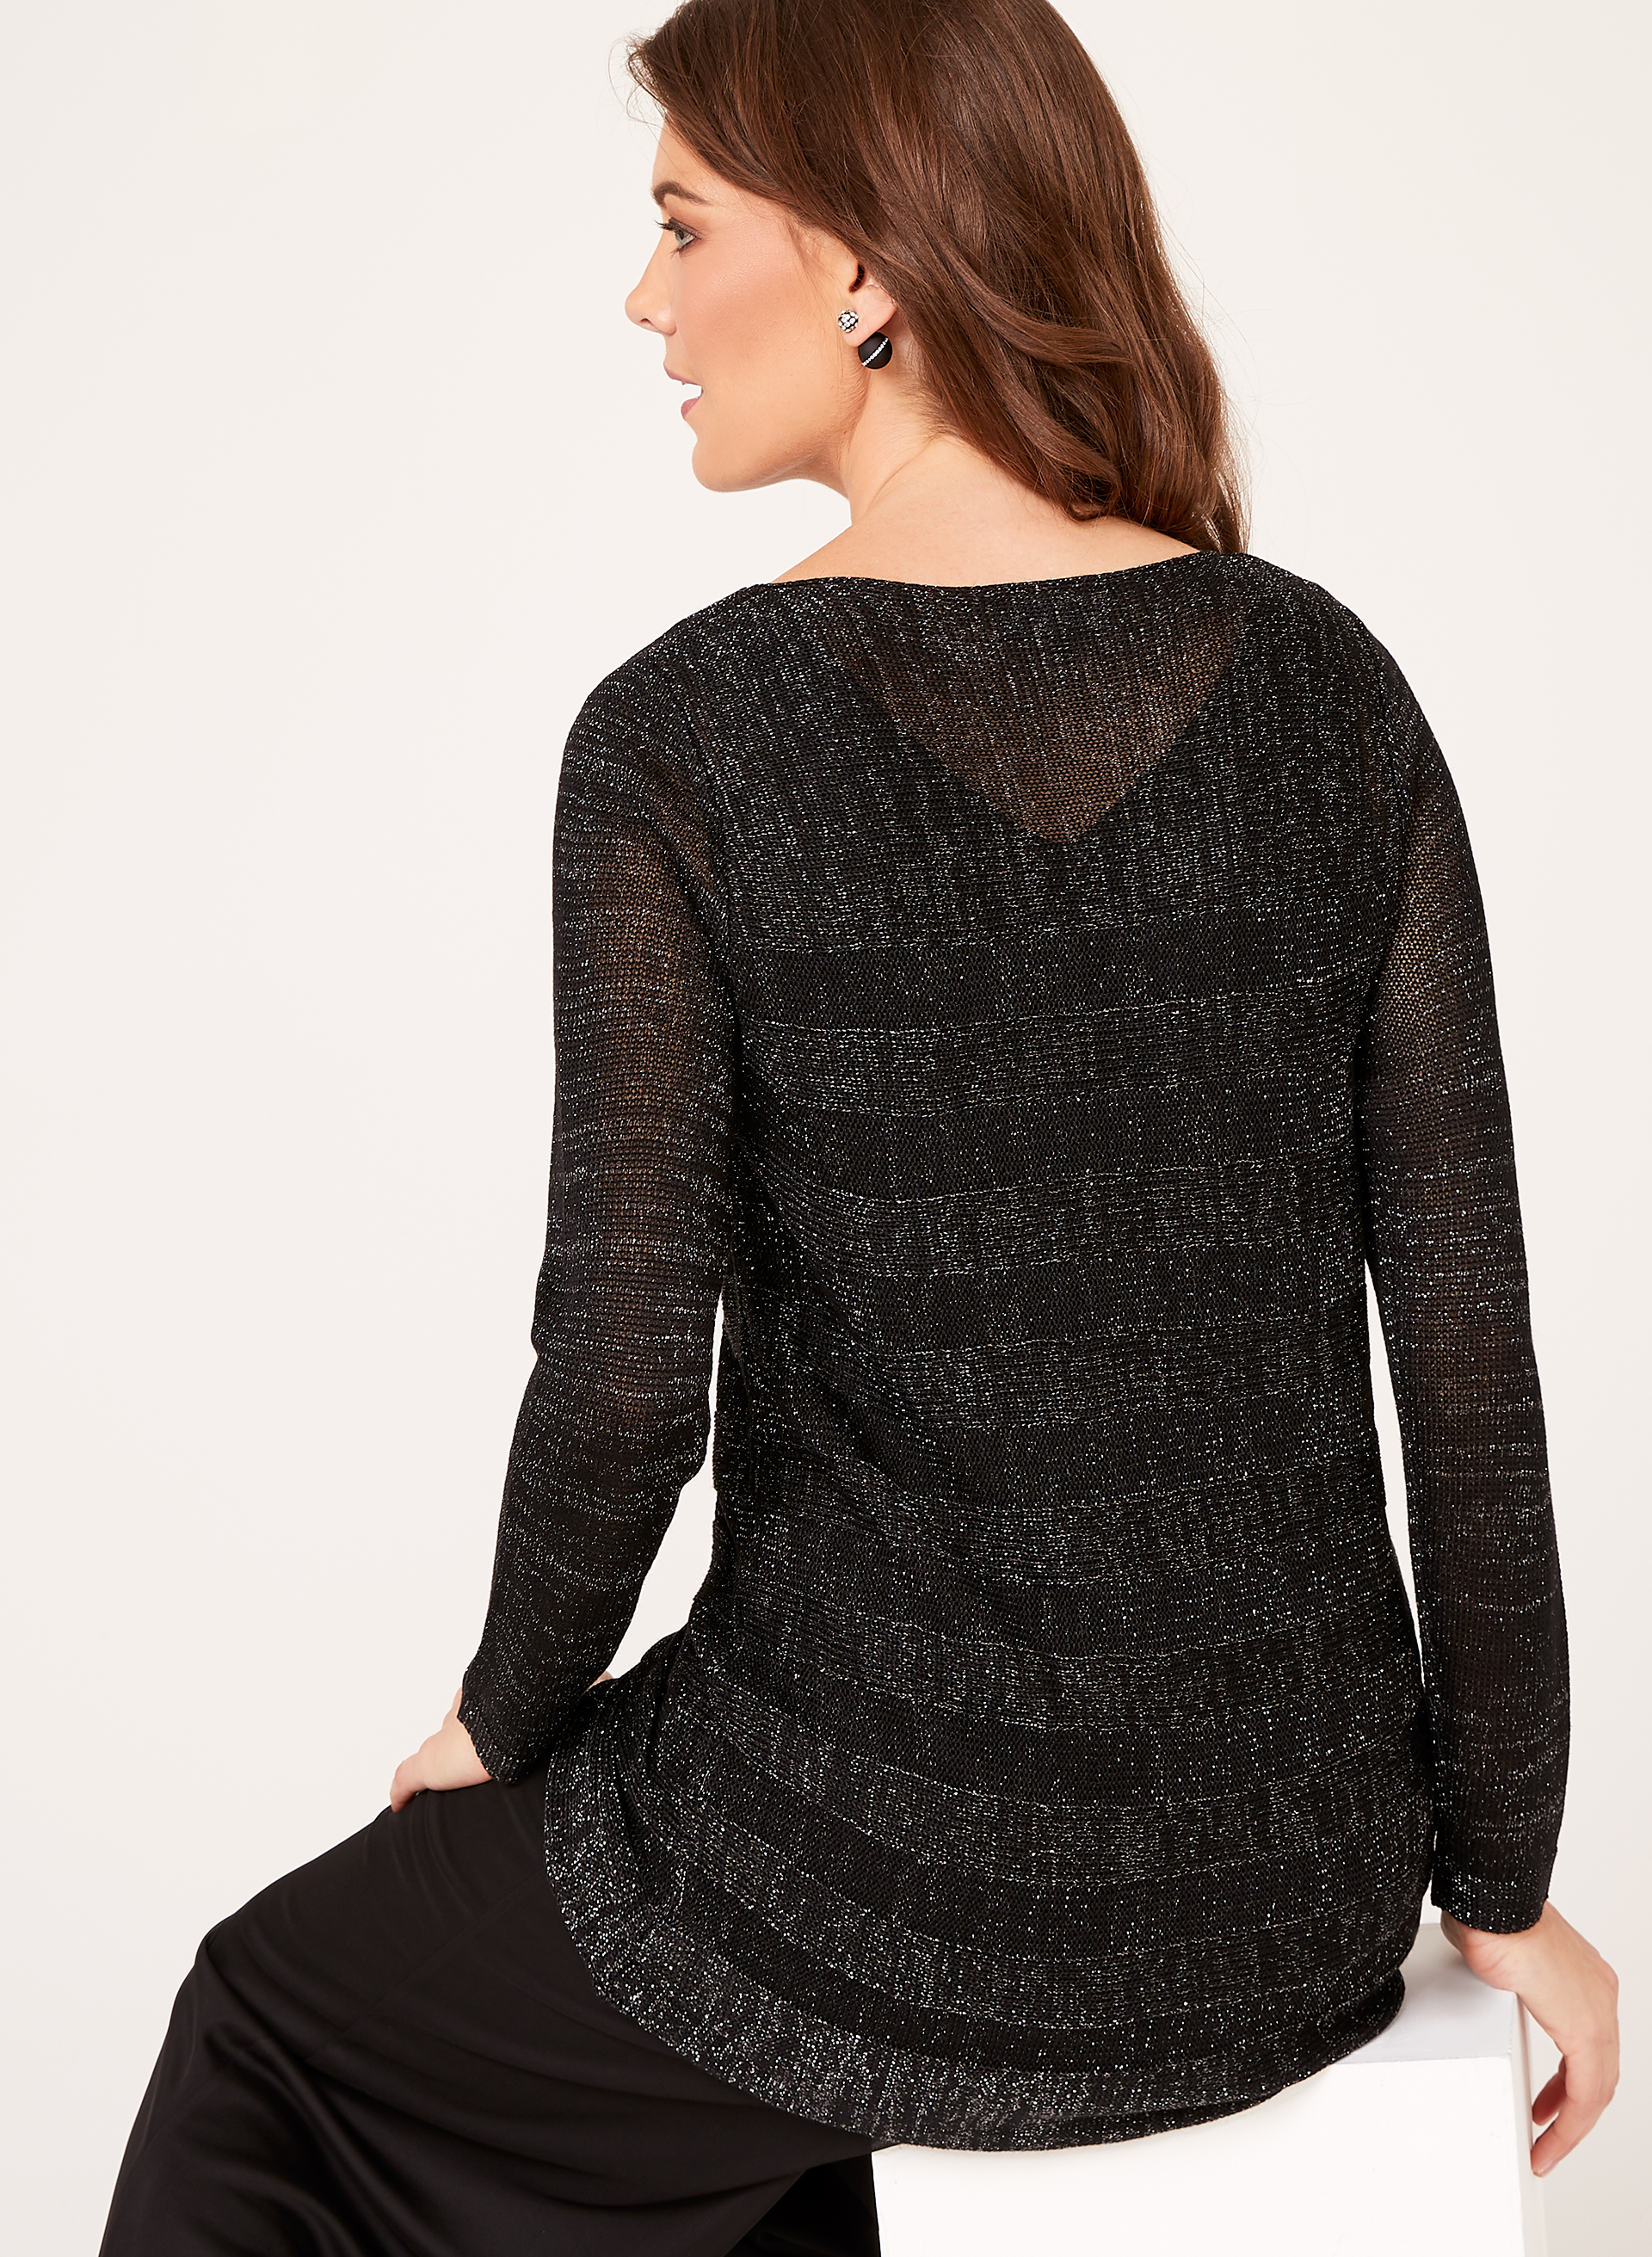 Free shipping BOTH ways on Sweaters, Women, Tunic, from our vast selection of styles. Fast delivery, and 24/7/ real-person service with a smile. Click or call